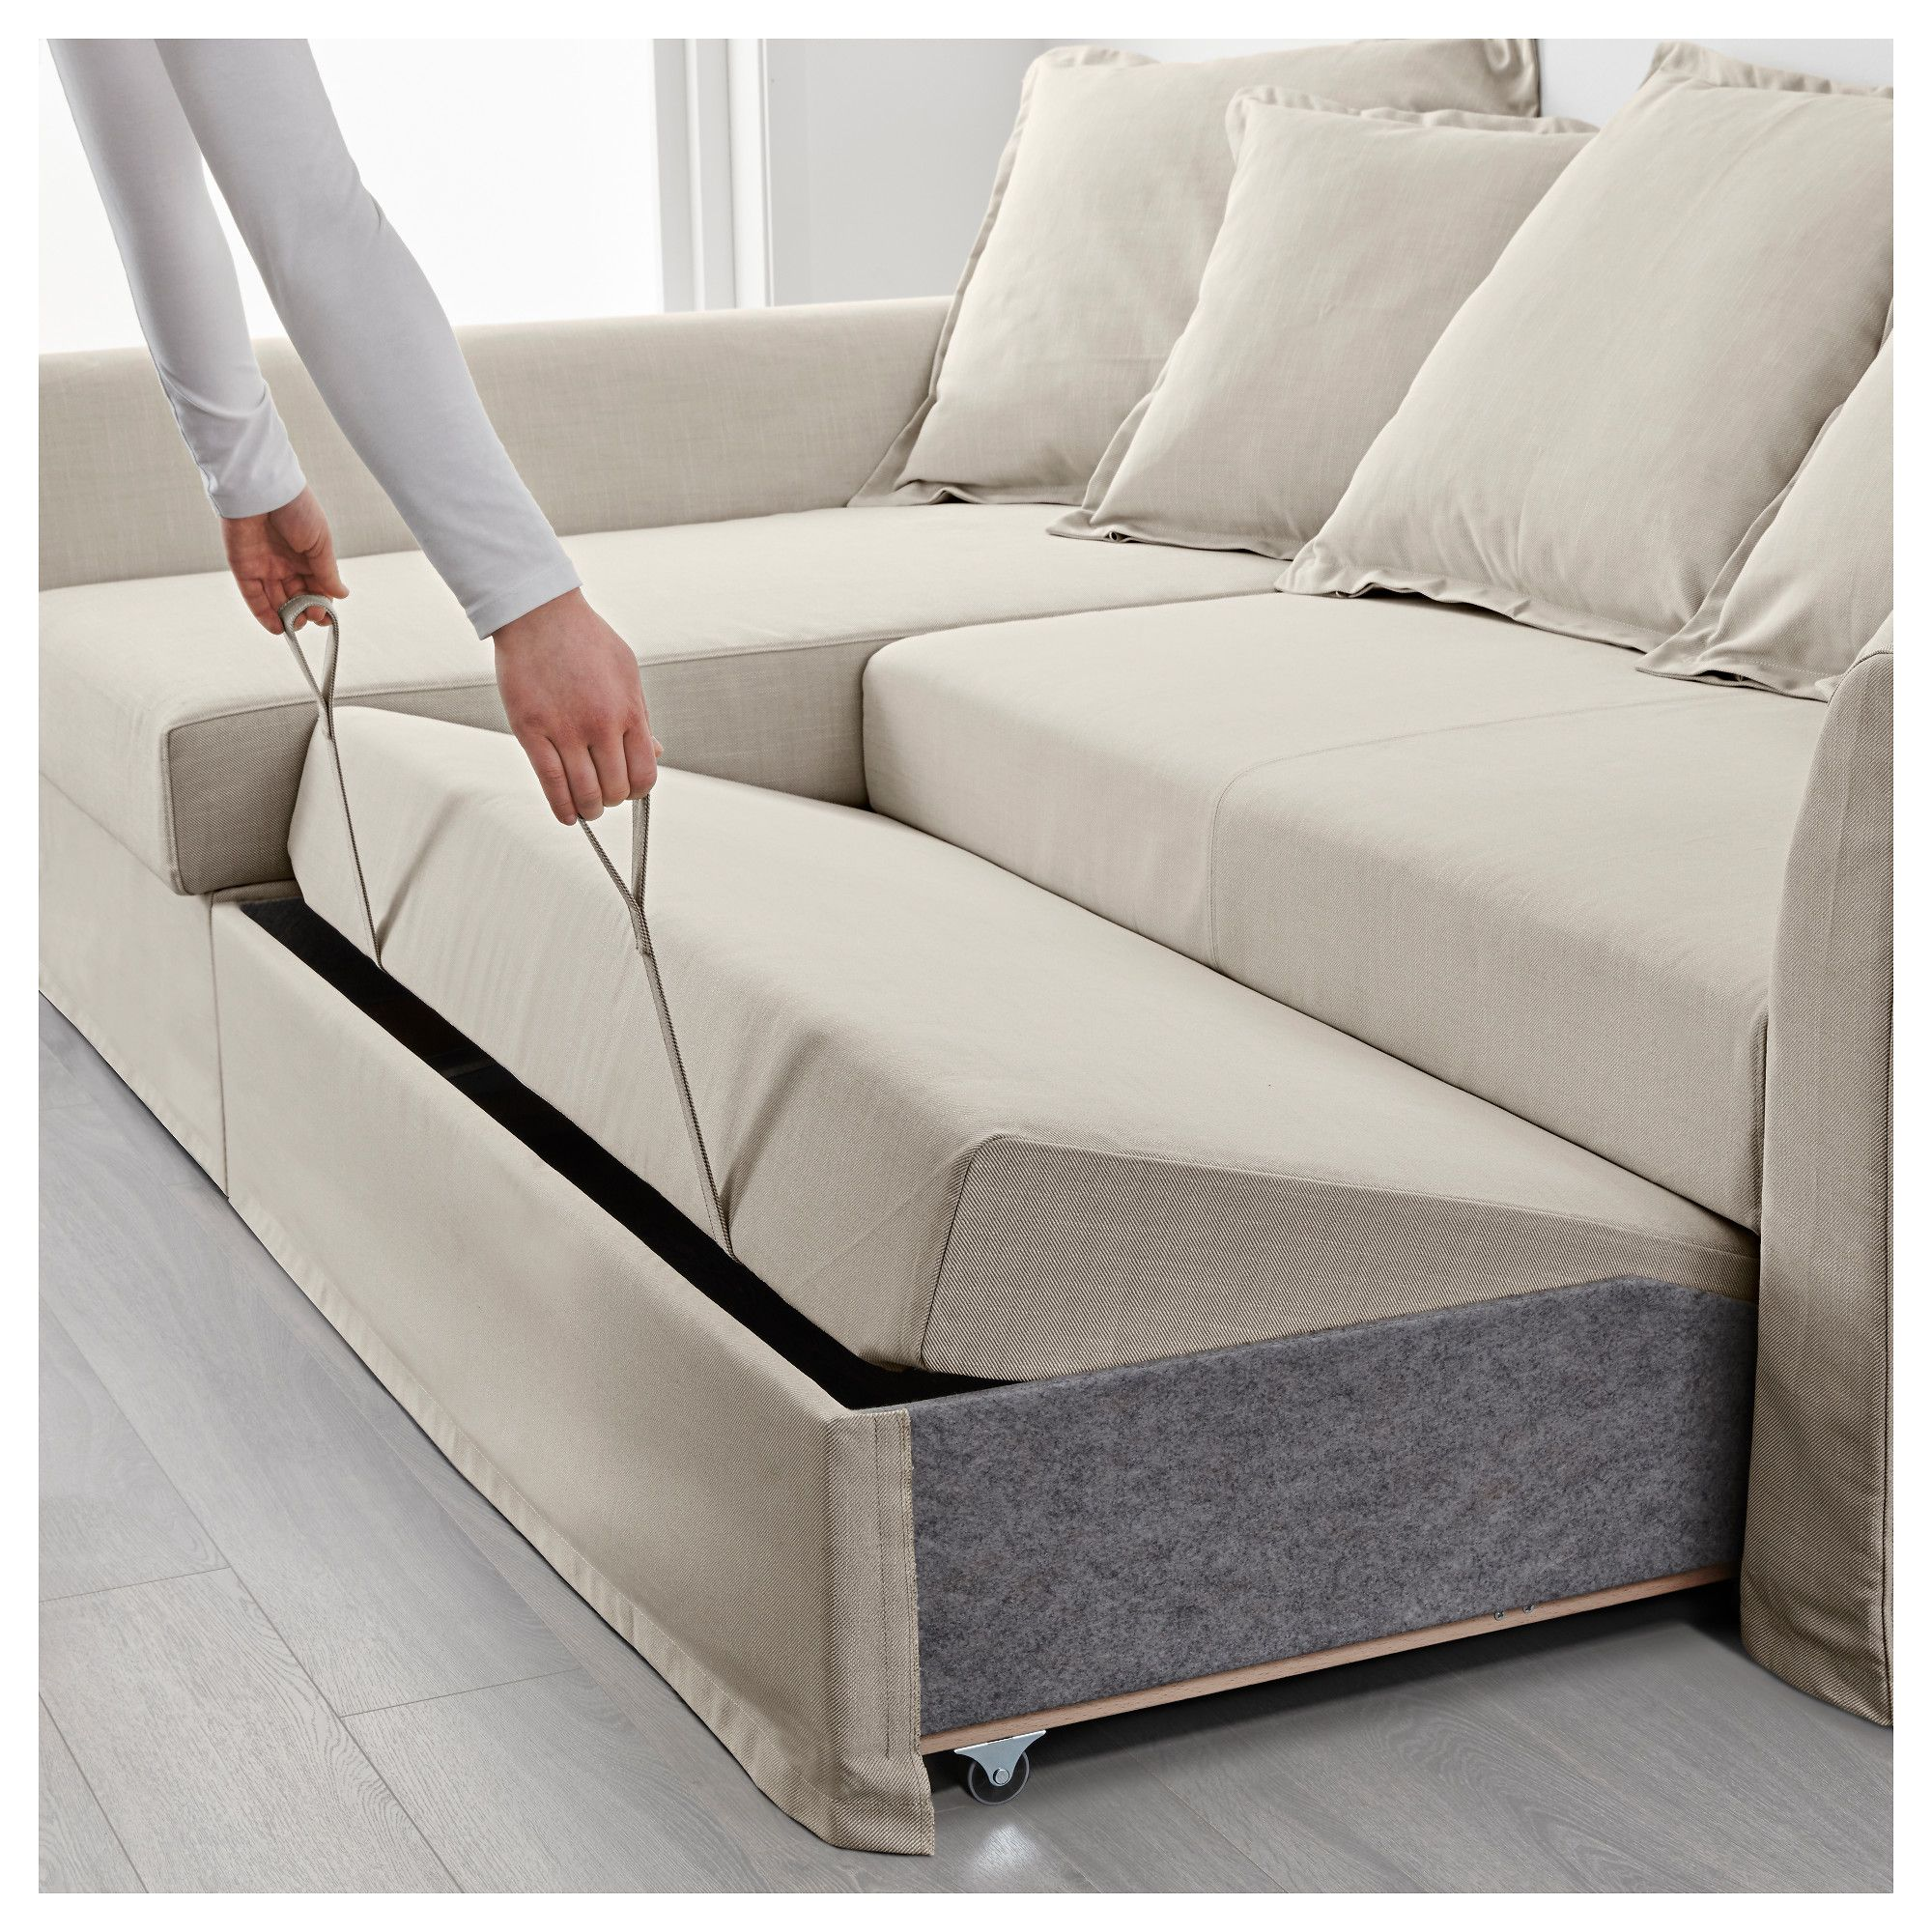 Mobly Sofa Chaise Furniture And Home Furnishings In 2019 Camper Redo Ideas Sofa